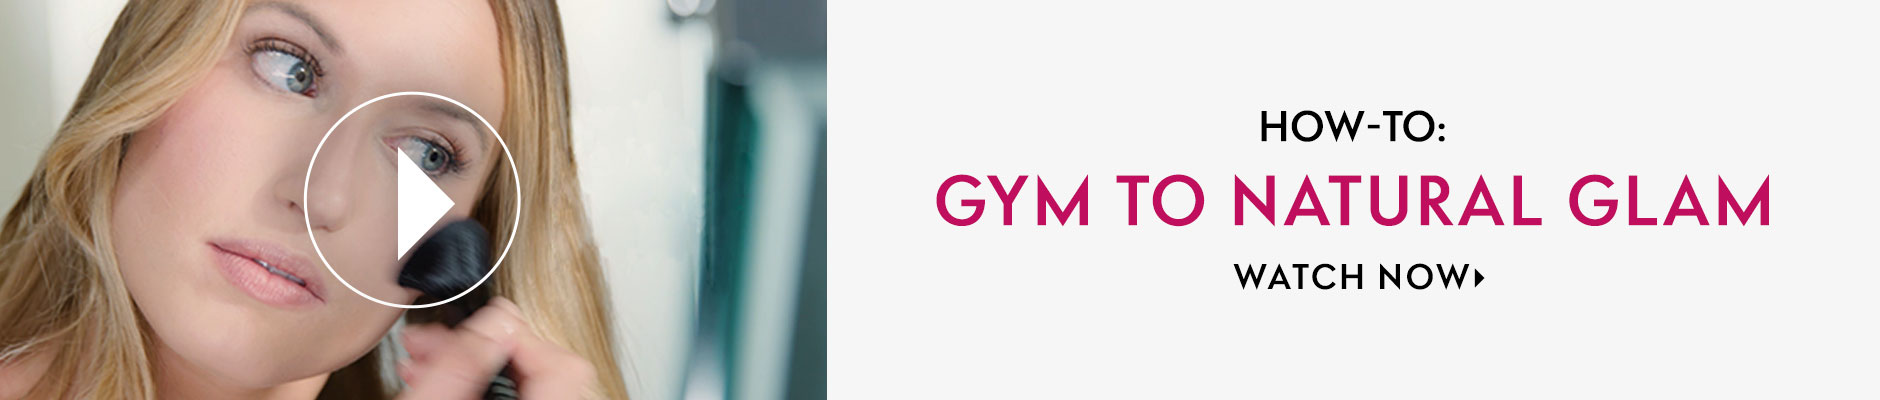 How-To: Gym to Natural Glam